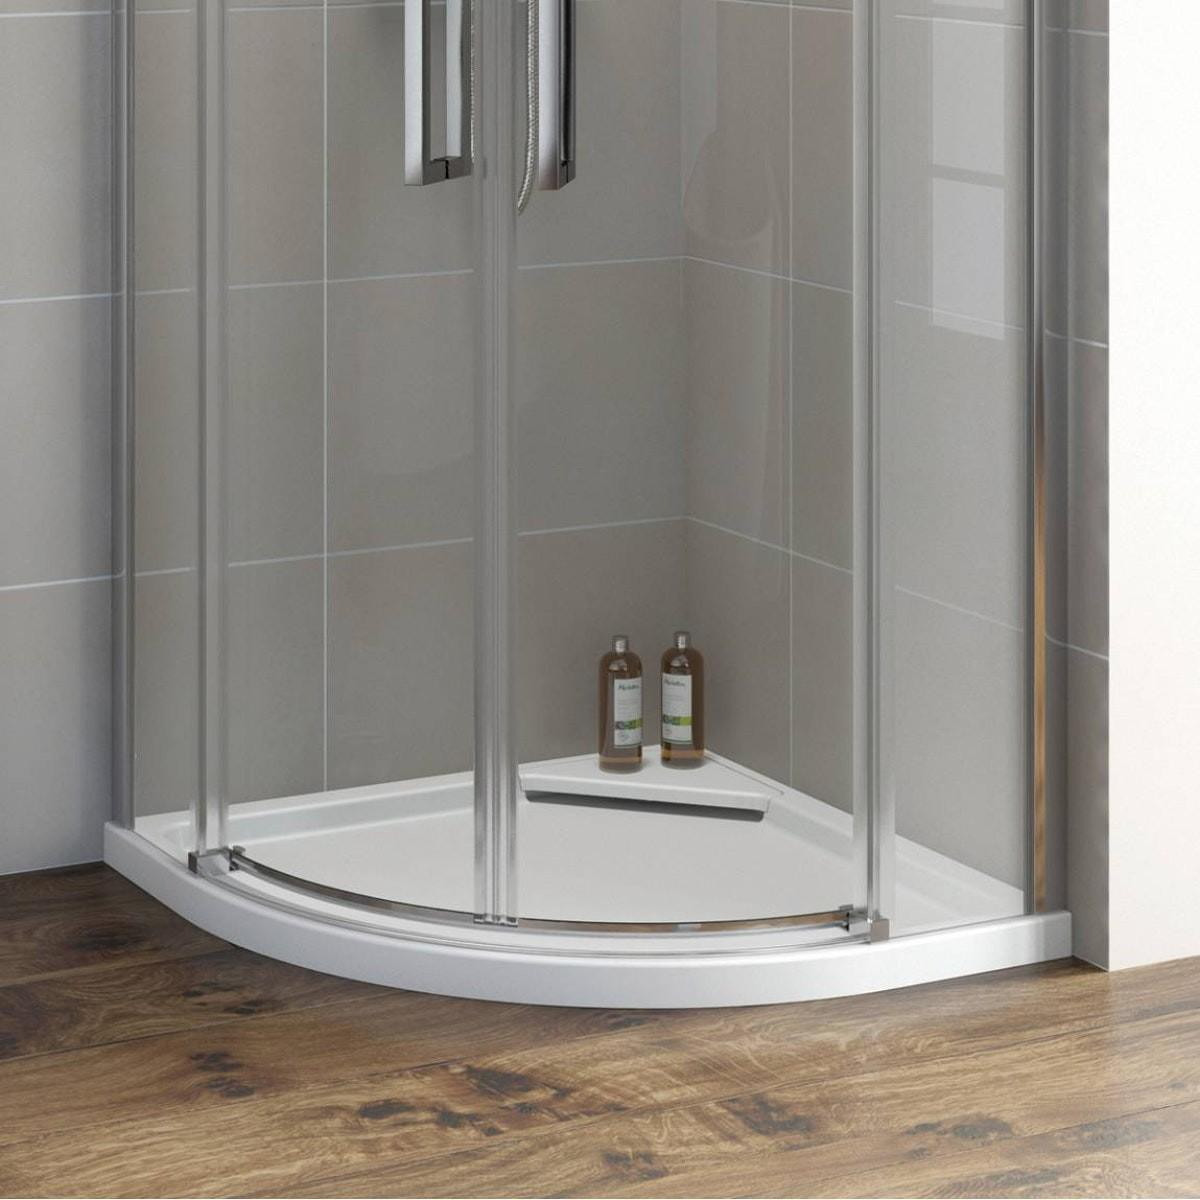 Mode Designer Quadrant Stone Shower Tray Victoriaplum